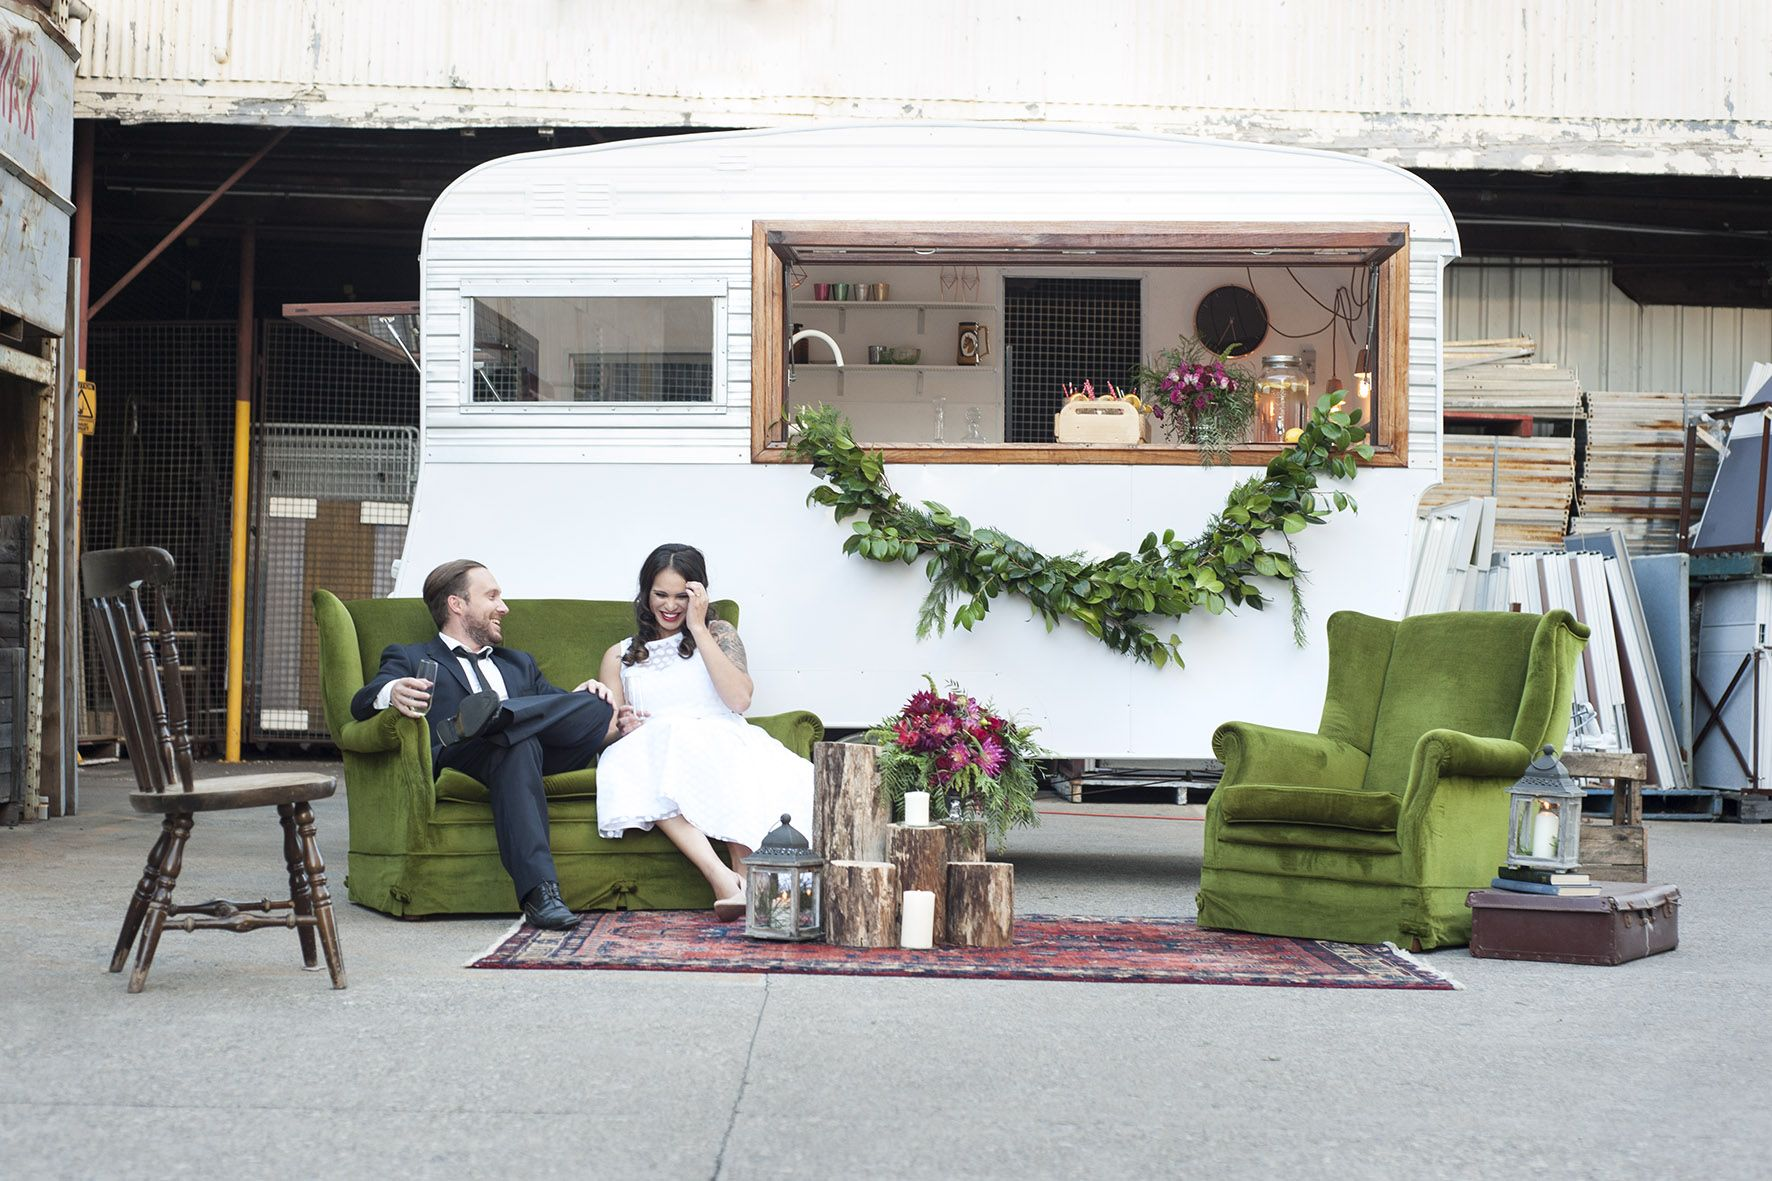 gathering events offers a charming renovated mobile vintage